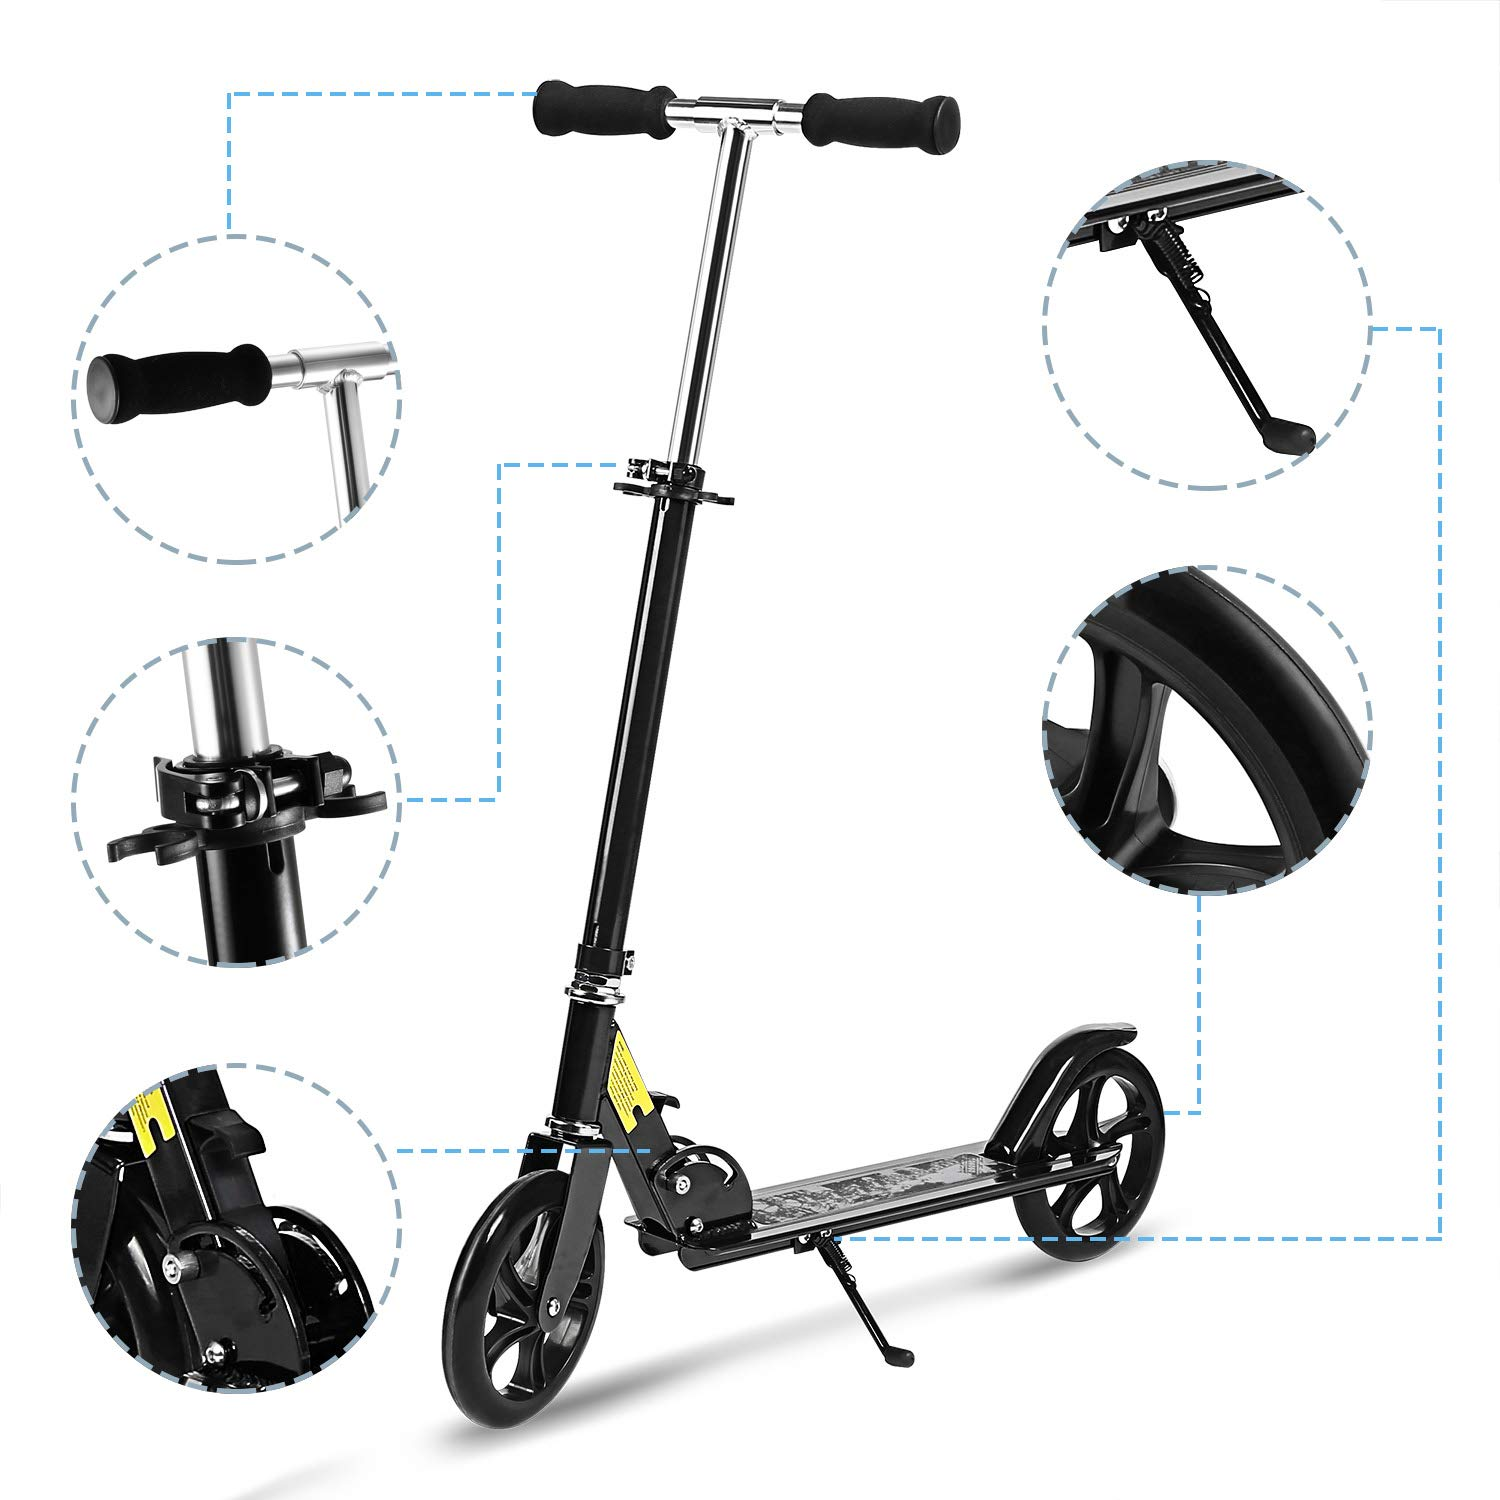 Hikole Scooter for Adult Youth Kids - Foldable Adjustable Portable Ultra-Lightweight   Teen Kick Scooter with Shoulder Strap, Birthday Gifts for Kids 8 Years Old and Up   Support 220 lbs by Hikole (Image #5)